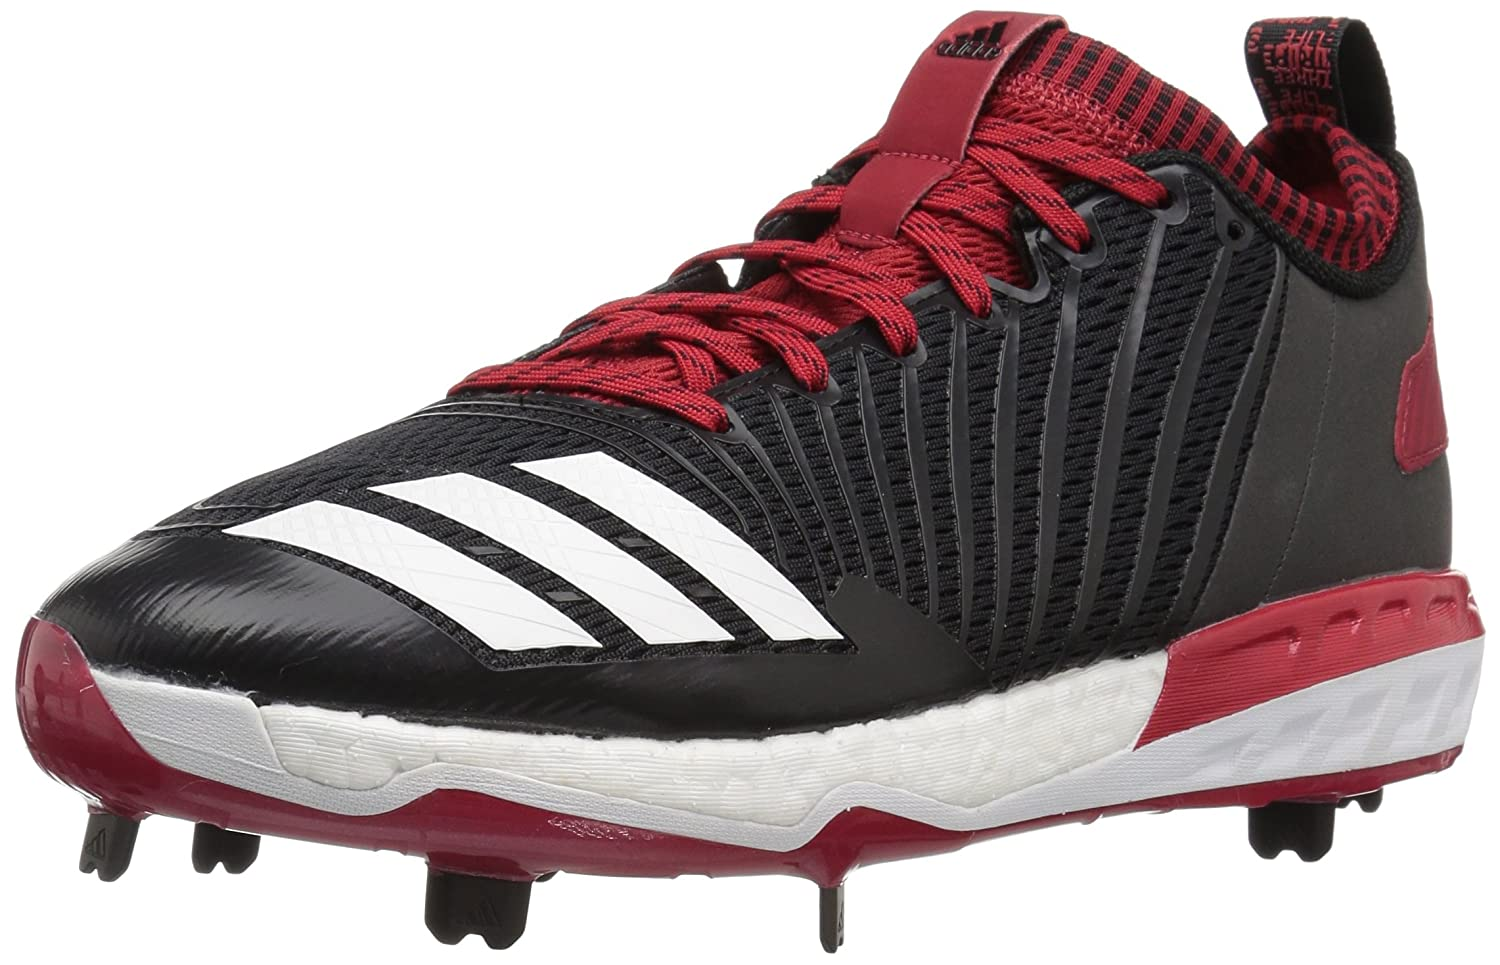 adidas Performance メンズ Boost Icon 3 B01MY0H1FV 12 D(M) US|Black/White/Power Red Black/White/Power Red 12 D(M) US